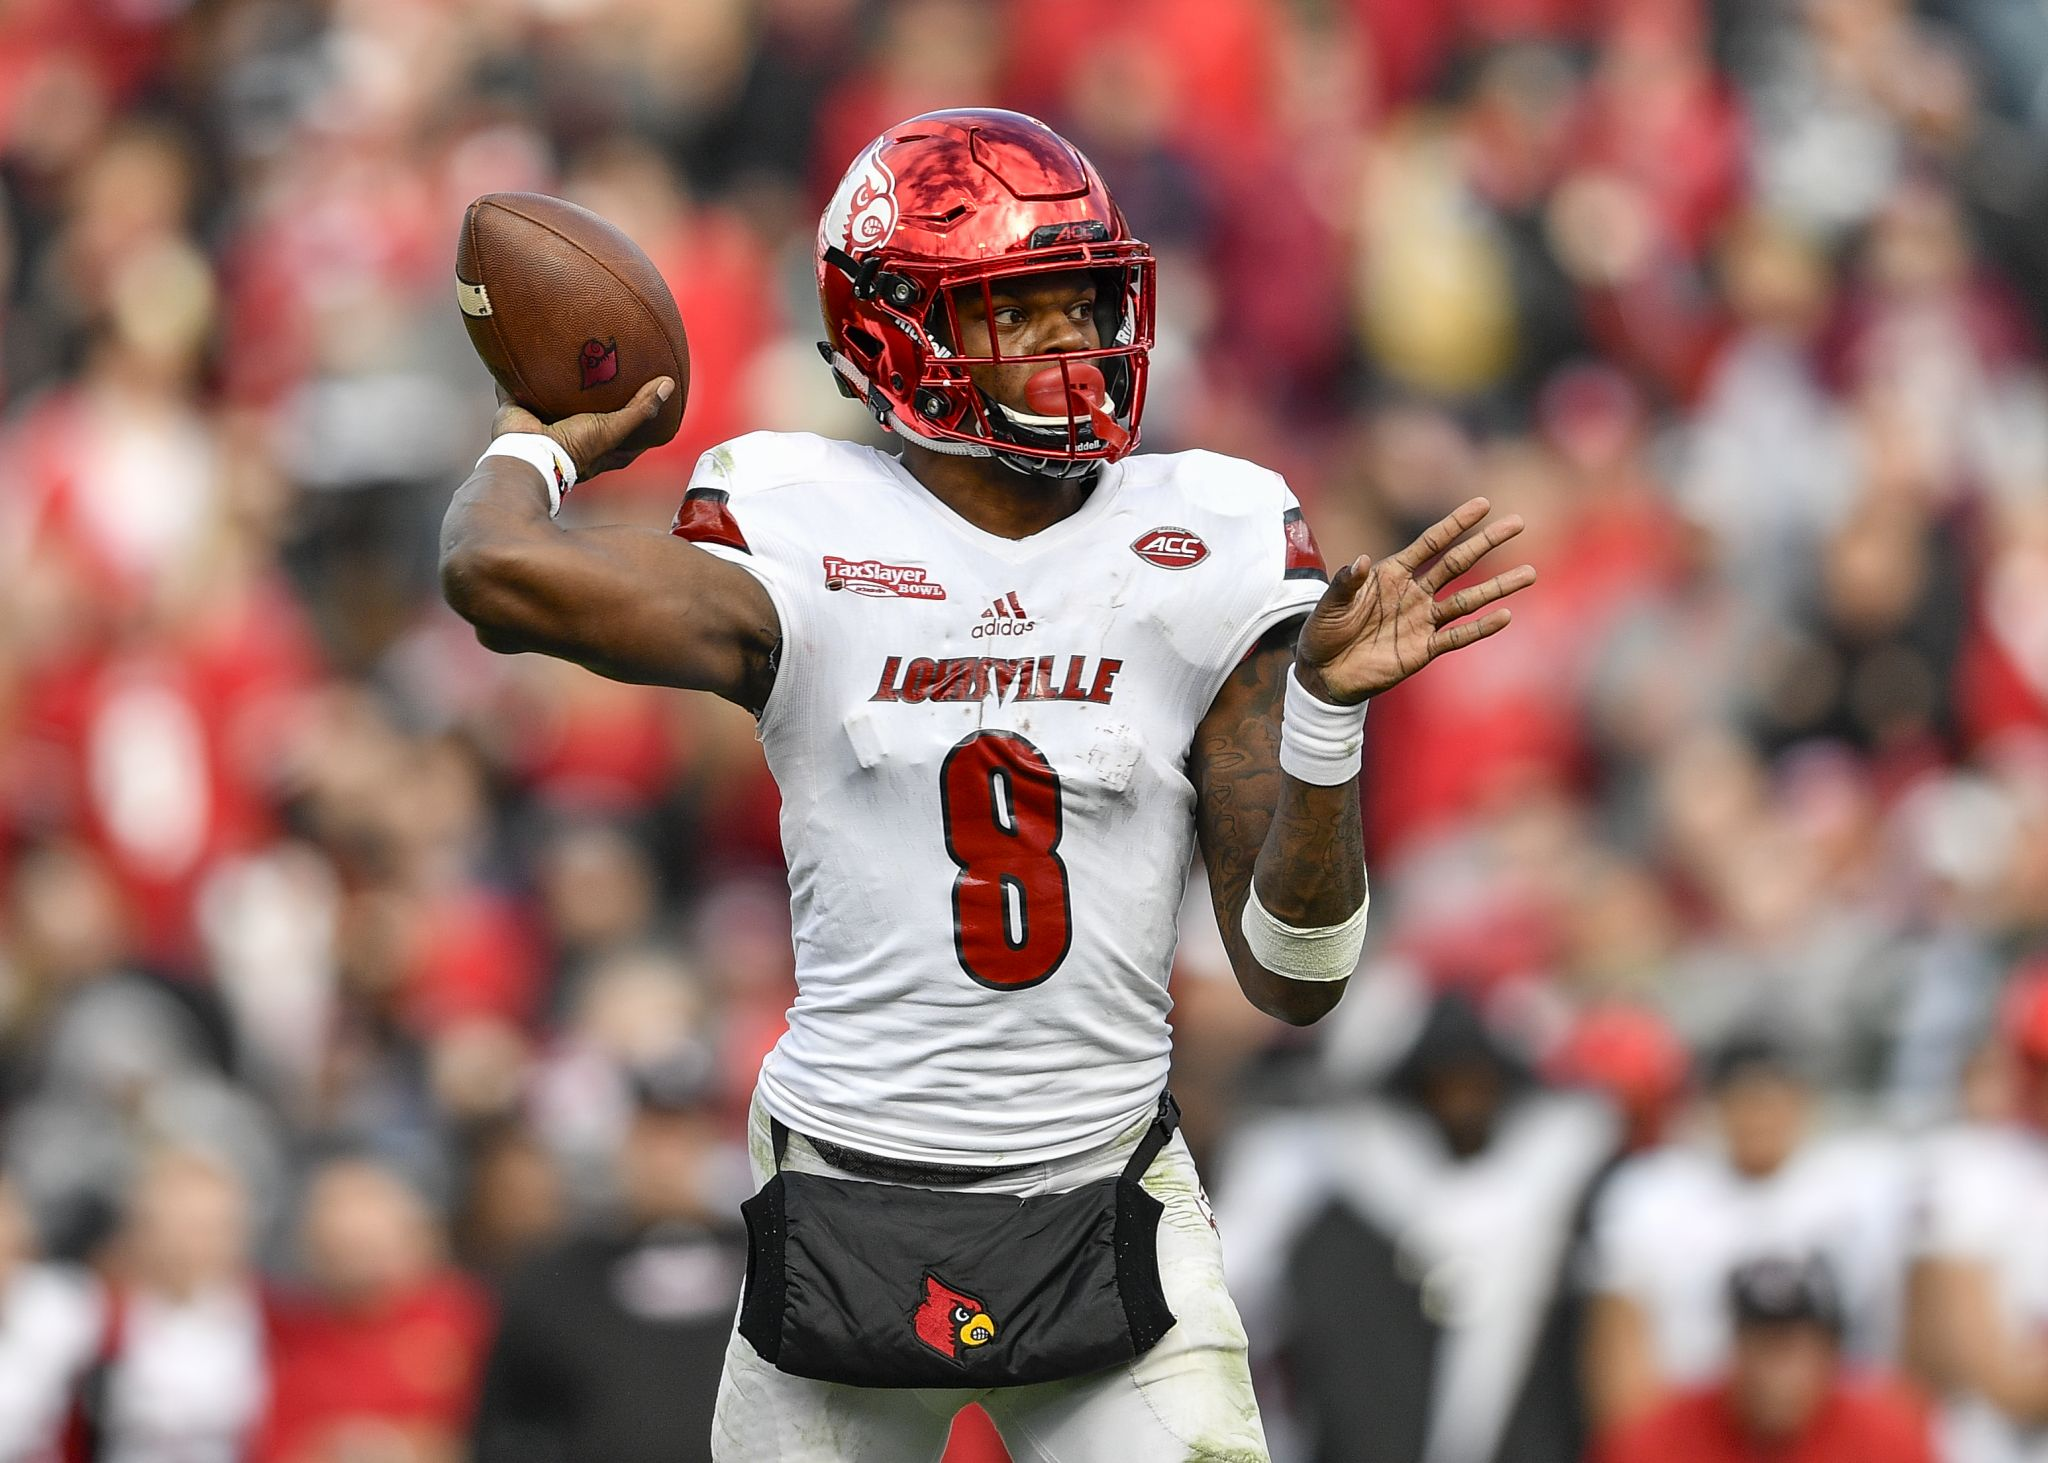 Multiple teams request Lamar Jackson to work out as WR